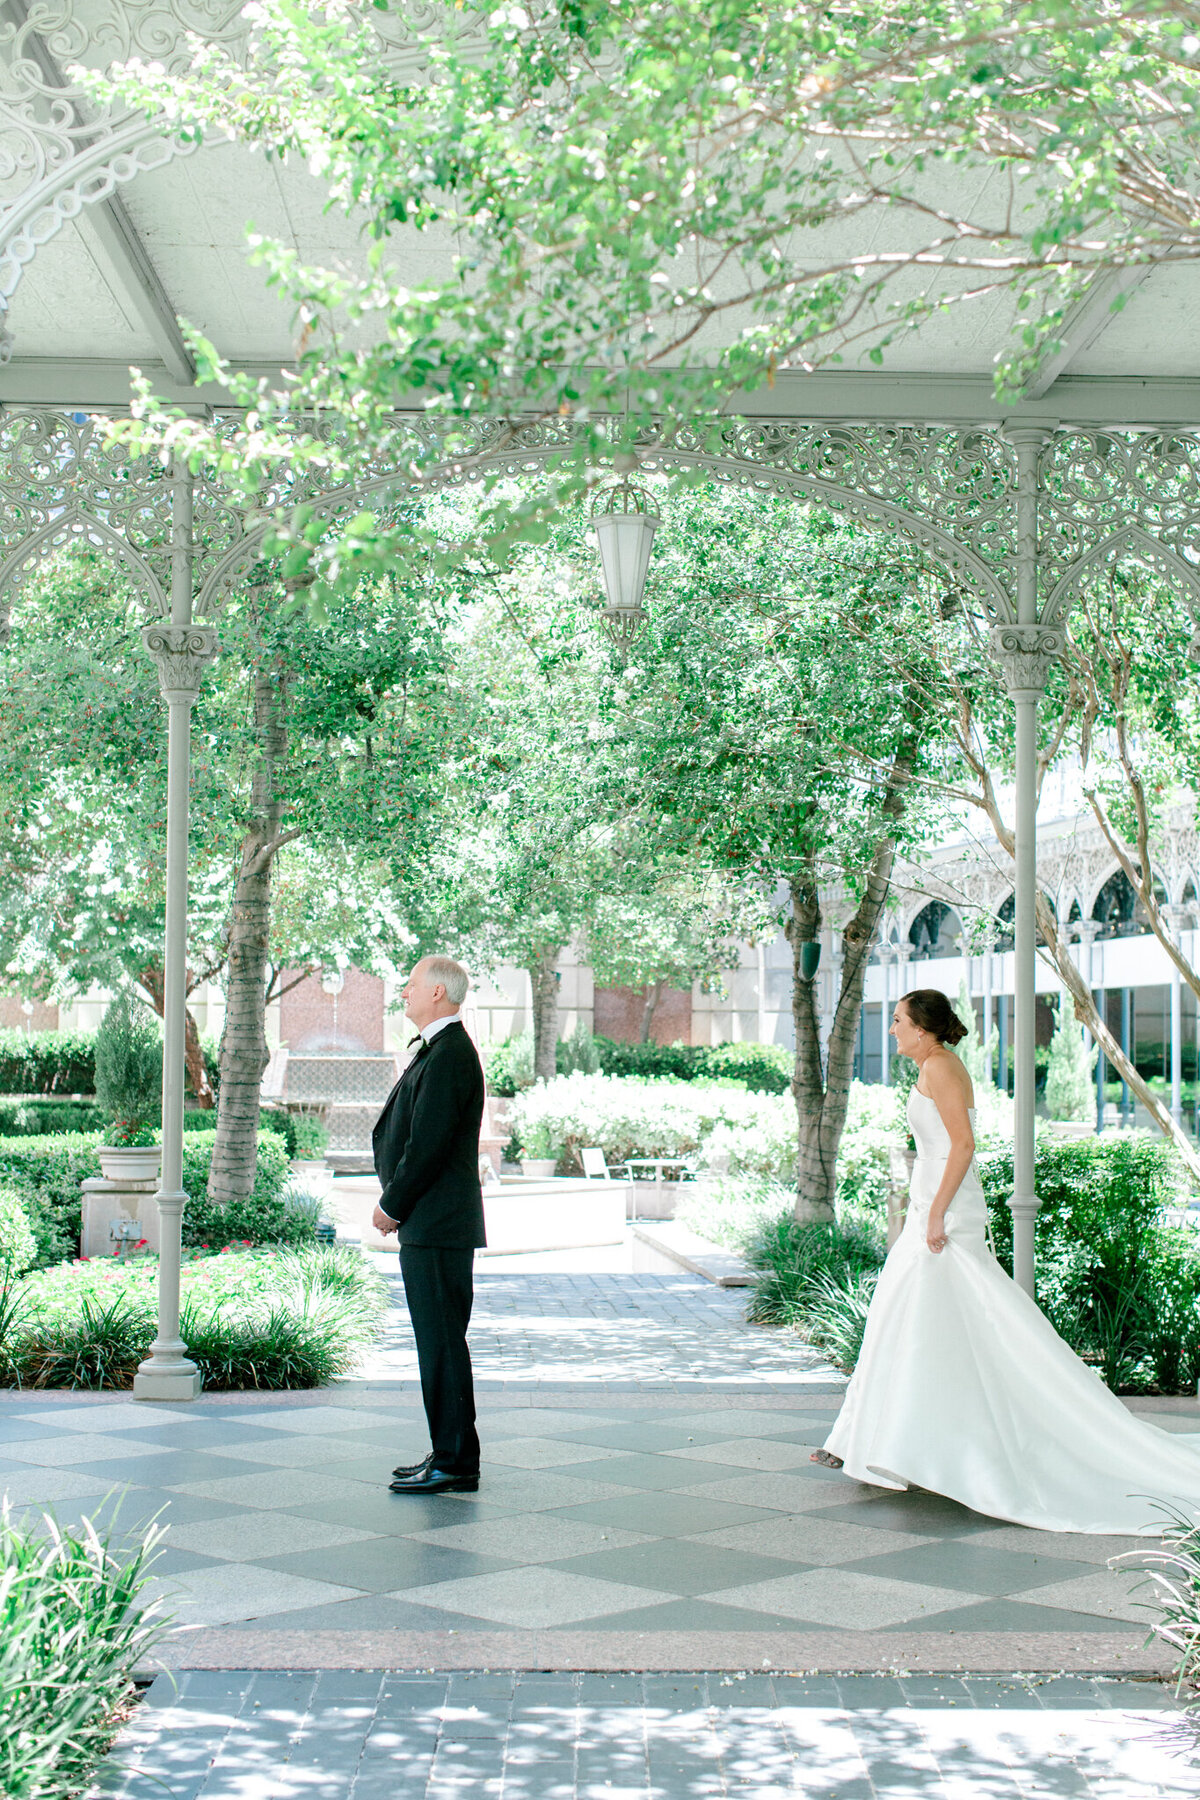 Wedding at the Crescent Court Hotel and Highland Park United Methodist Church in Dallas | Sami Kathryn Photography | DFW Wedding Photographer-37